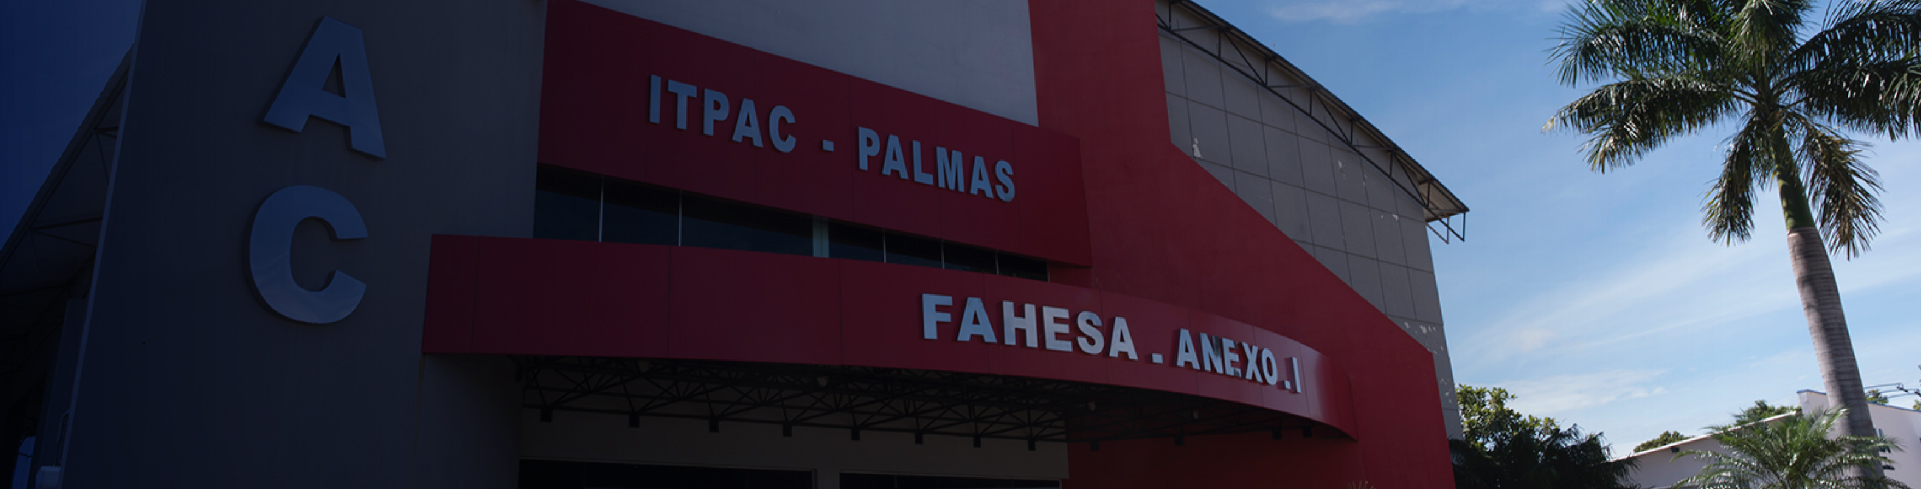 banners_ITPAC Palmas